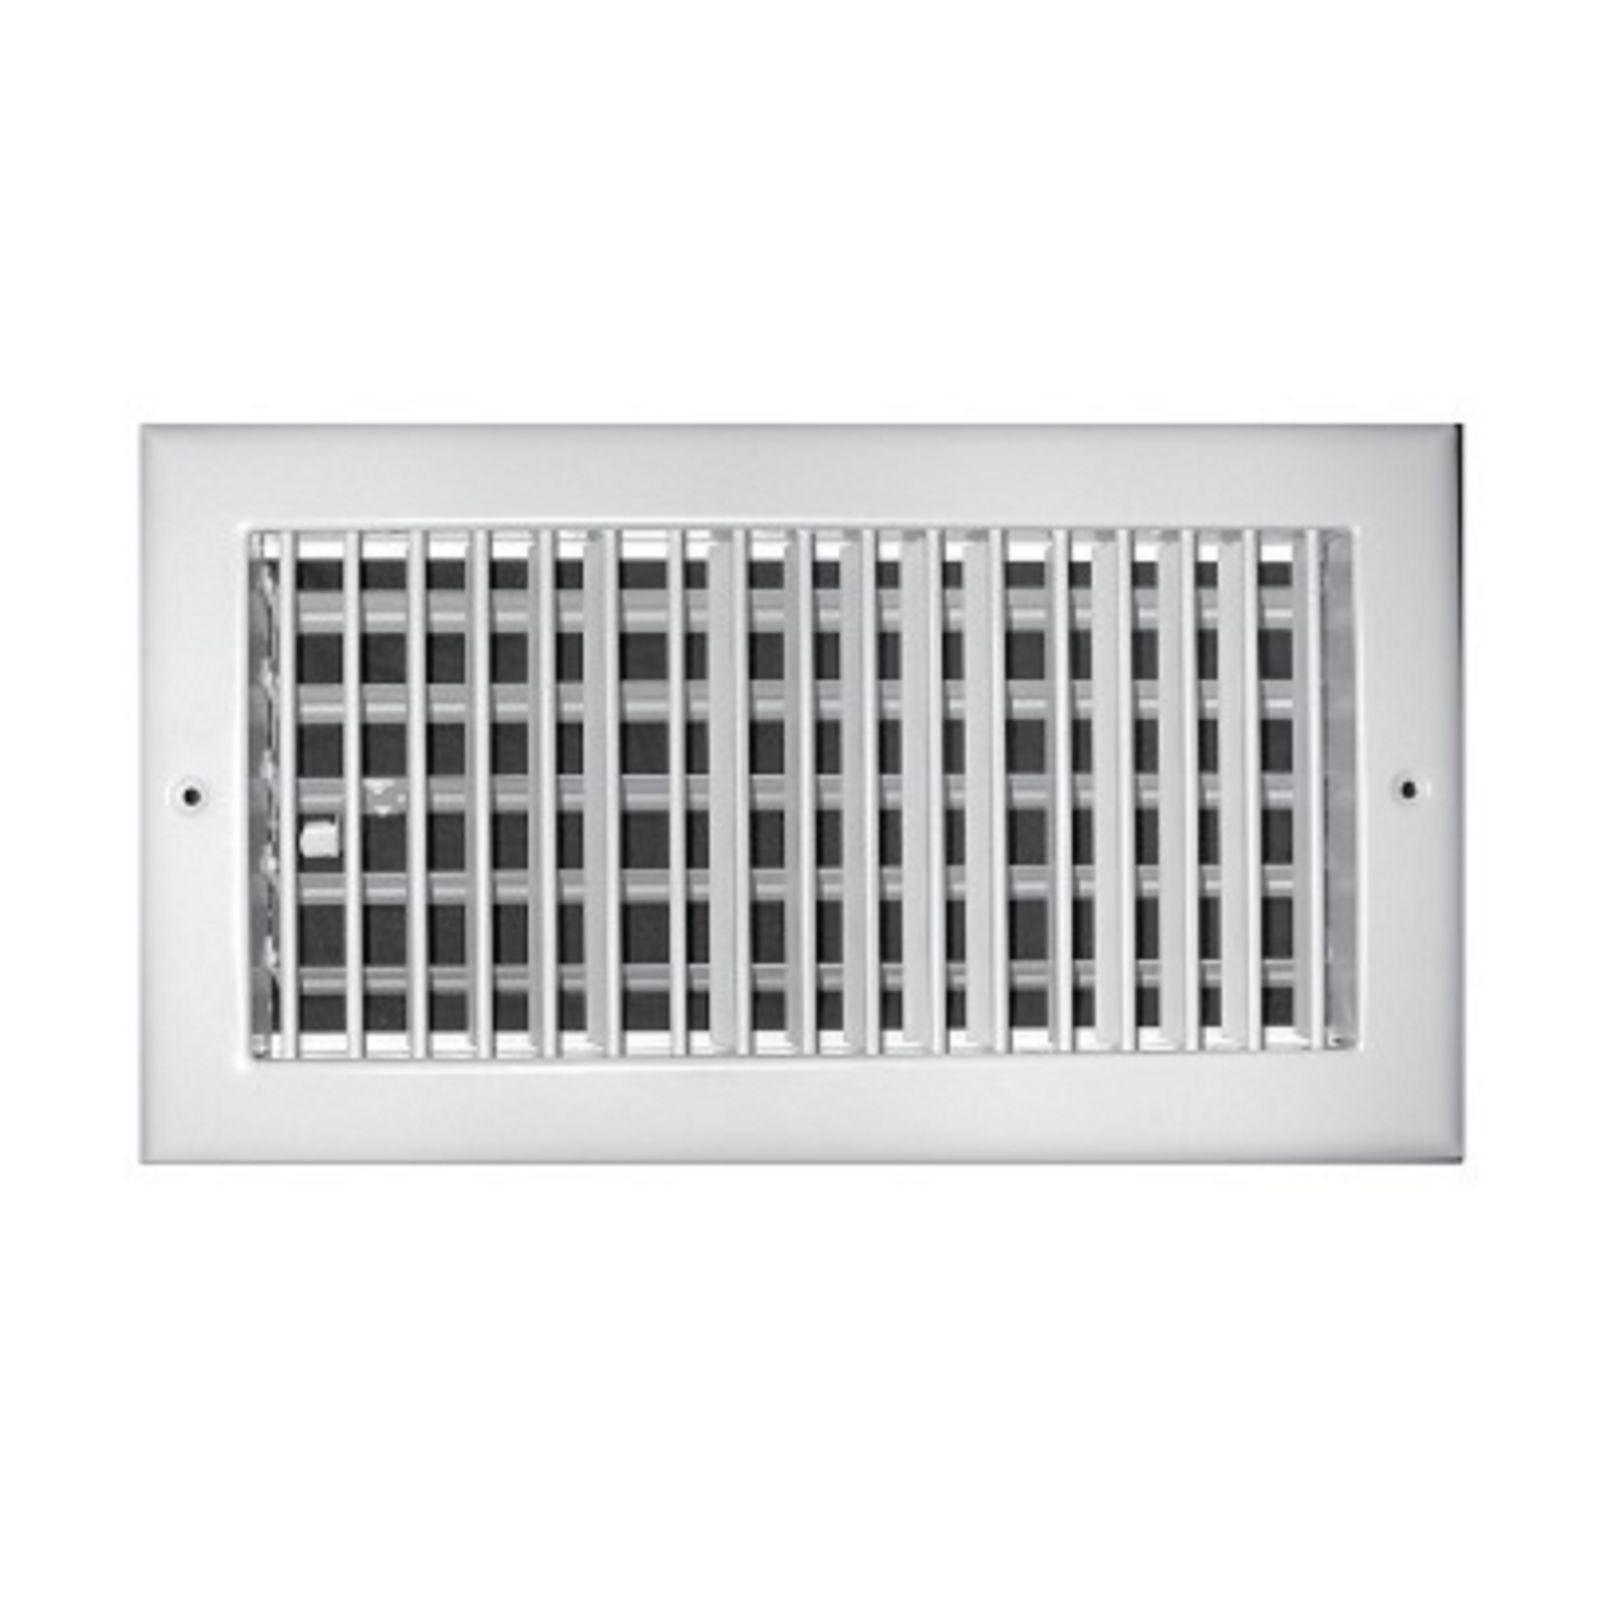 "TRUaire A210VM 12X06 - Aluminum Adjustable 1-Way Wall/Ceiling Register, Vertical, Multi Shutter Damper, White, 12"" X 06"""